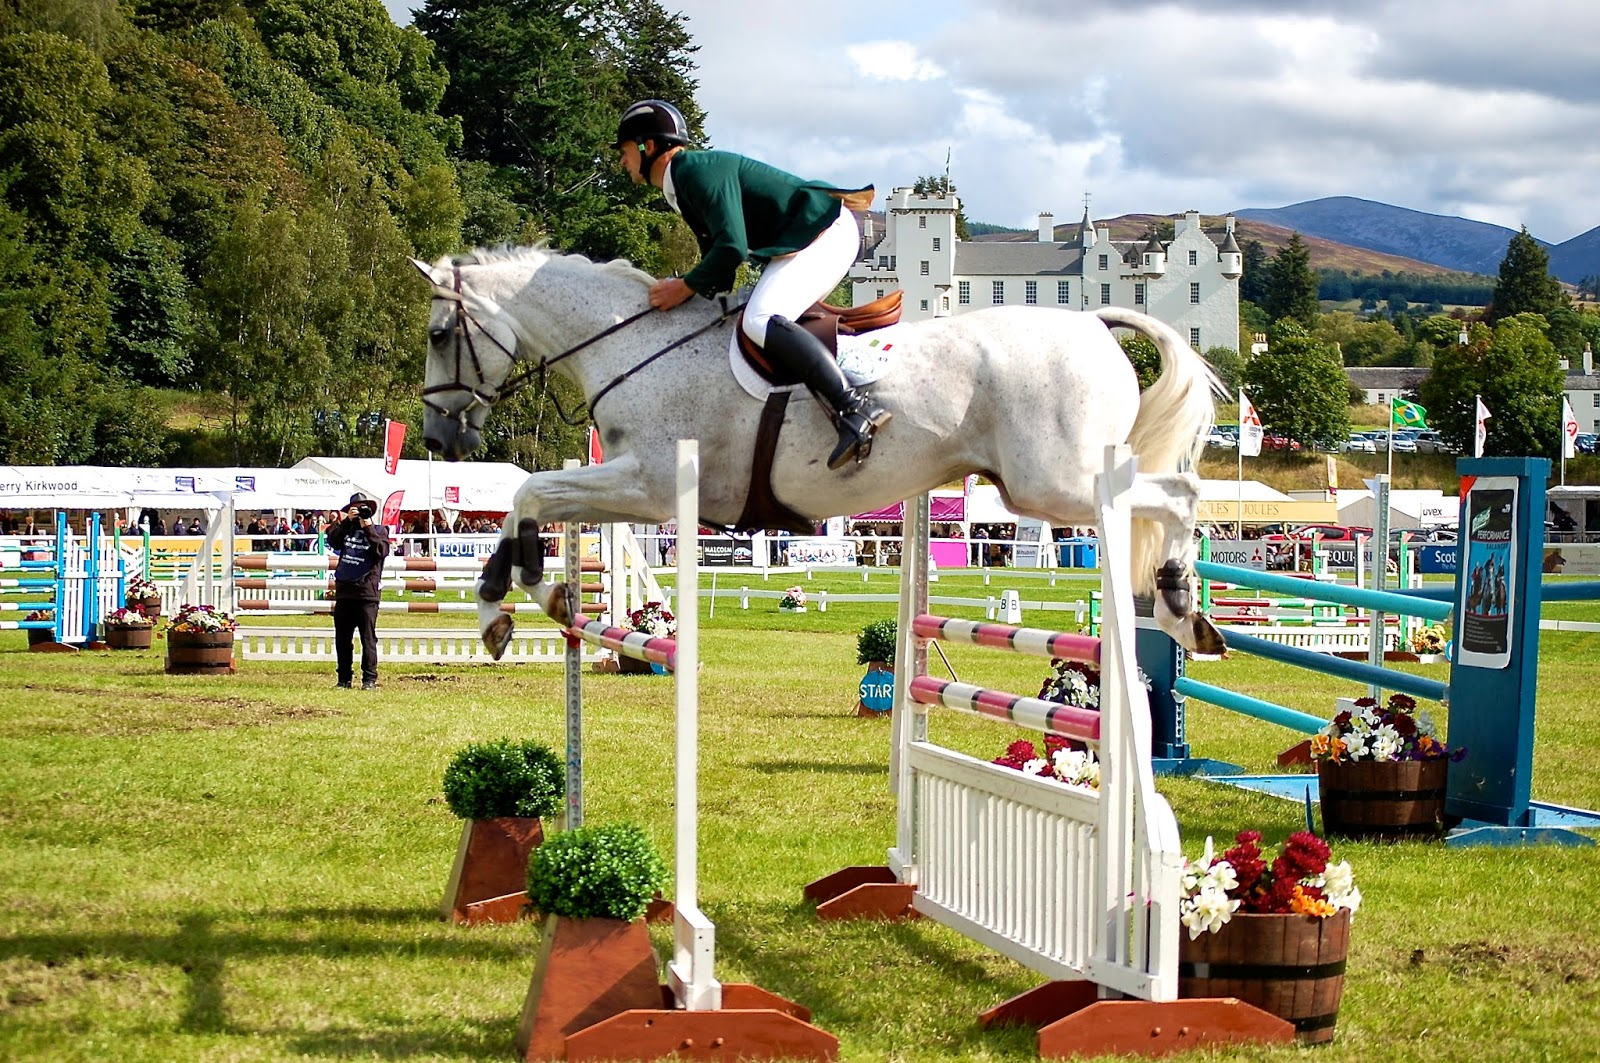 Blair Castle as the backdrop for show jumping